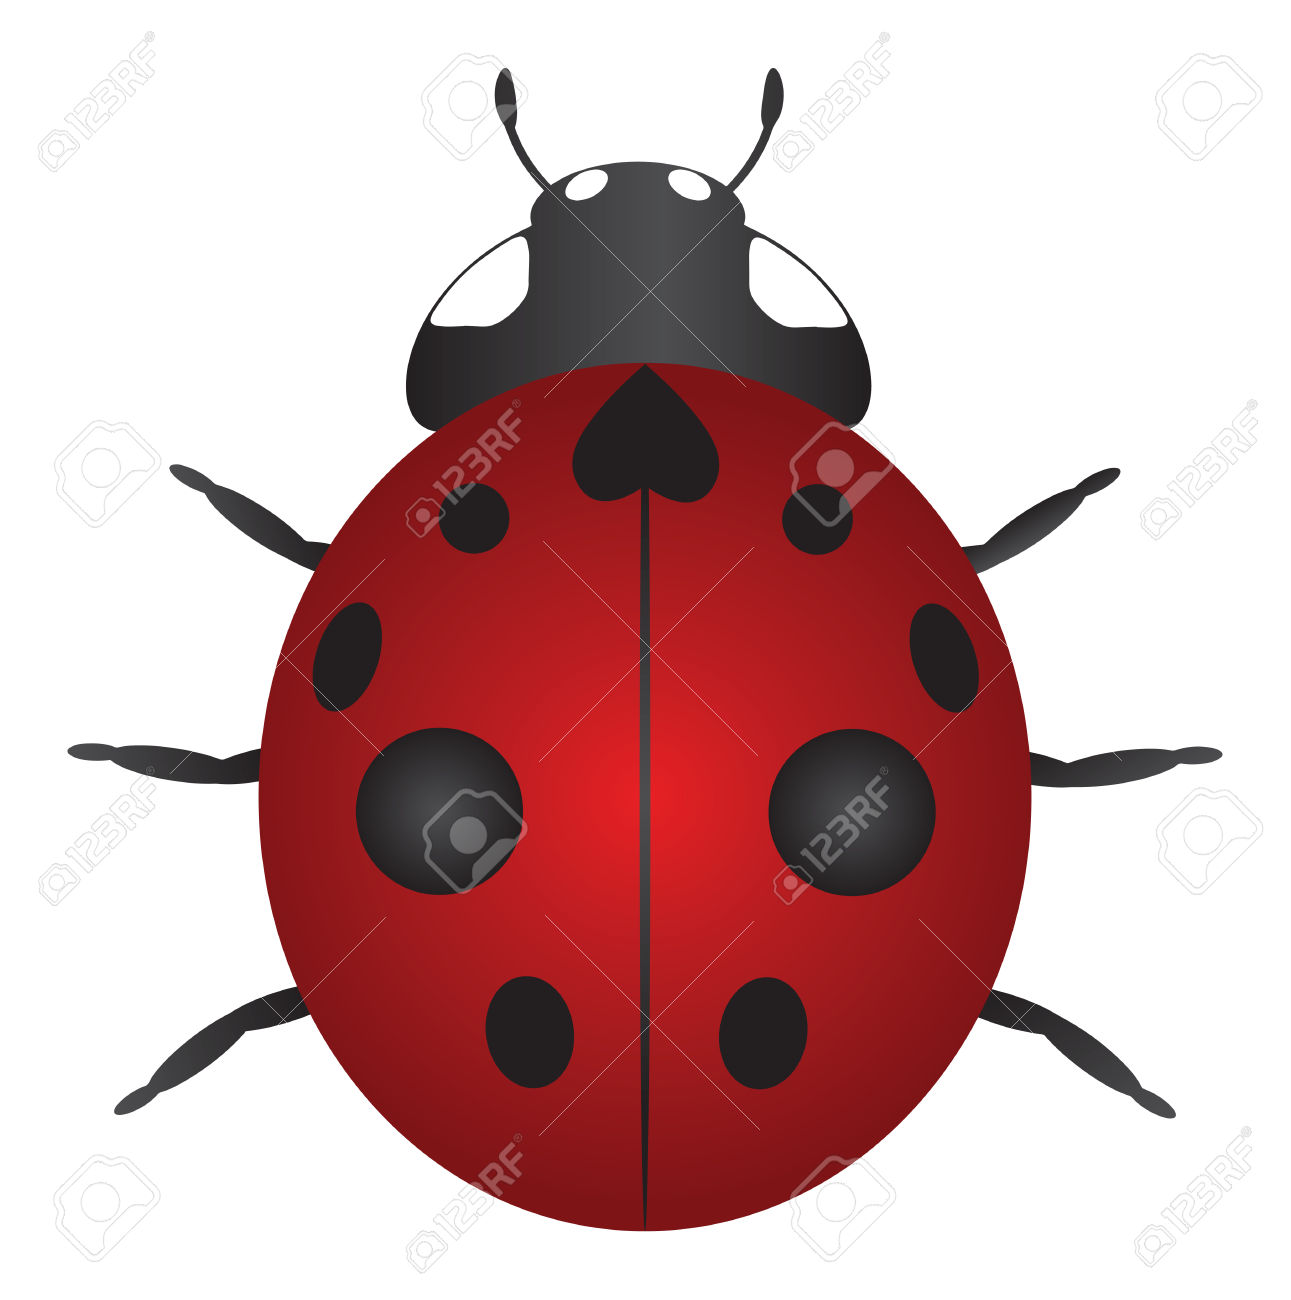 Red Nine Spotted Ladybug Isolated On White Background Color.